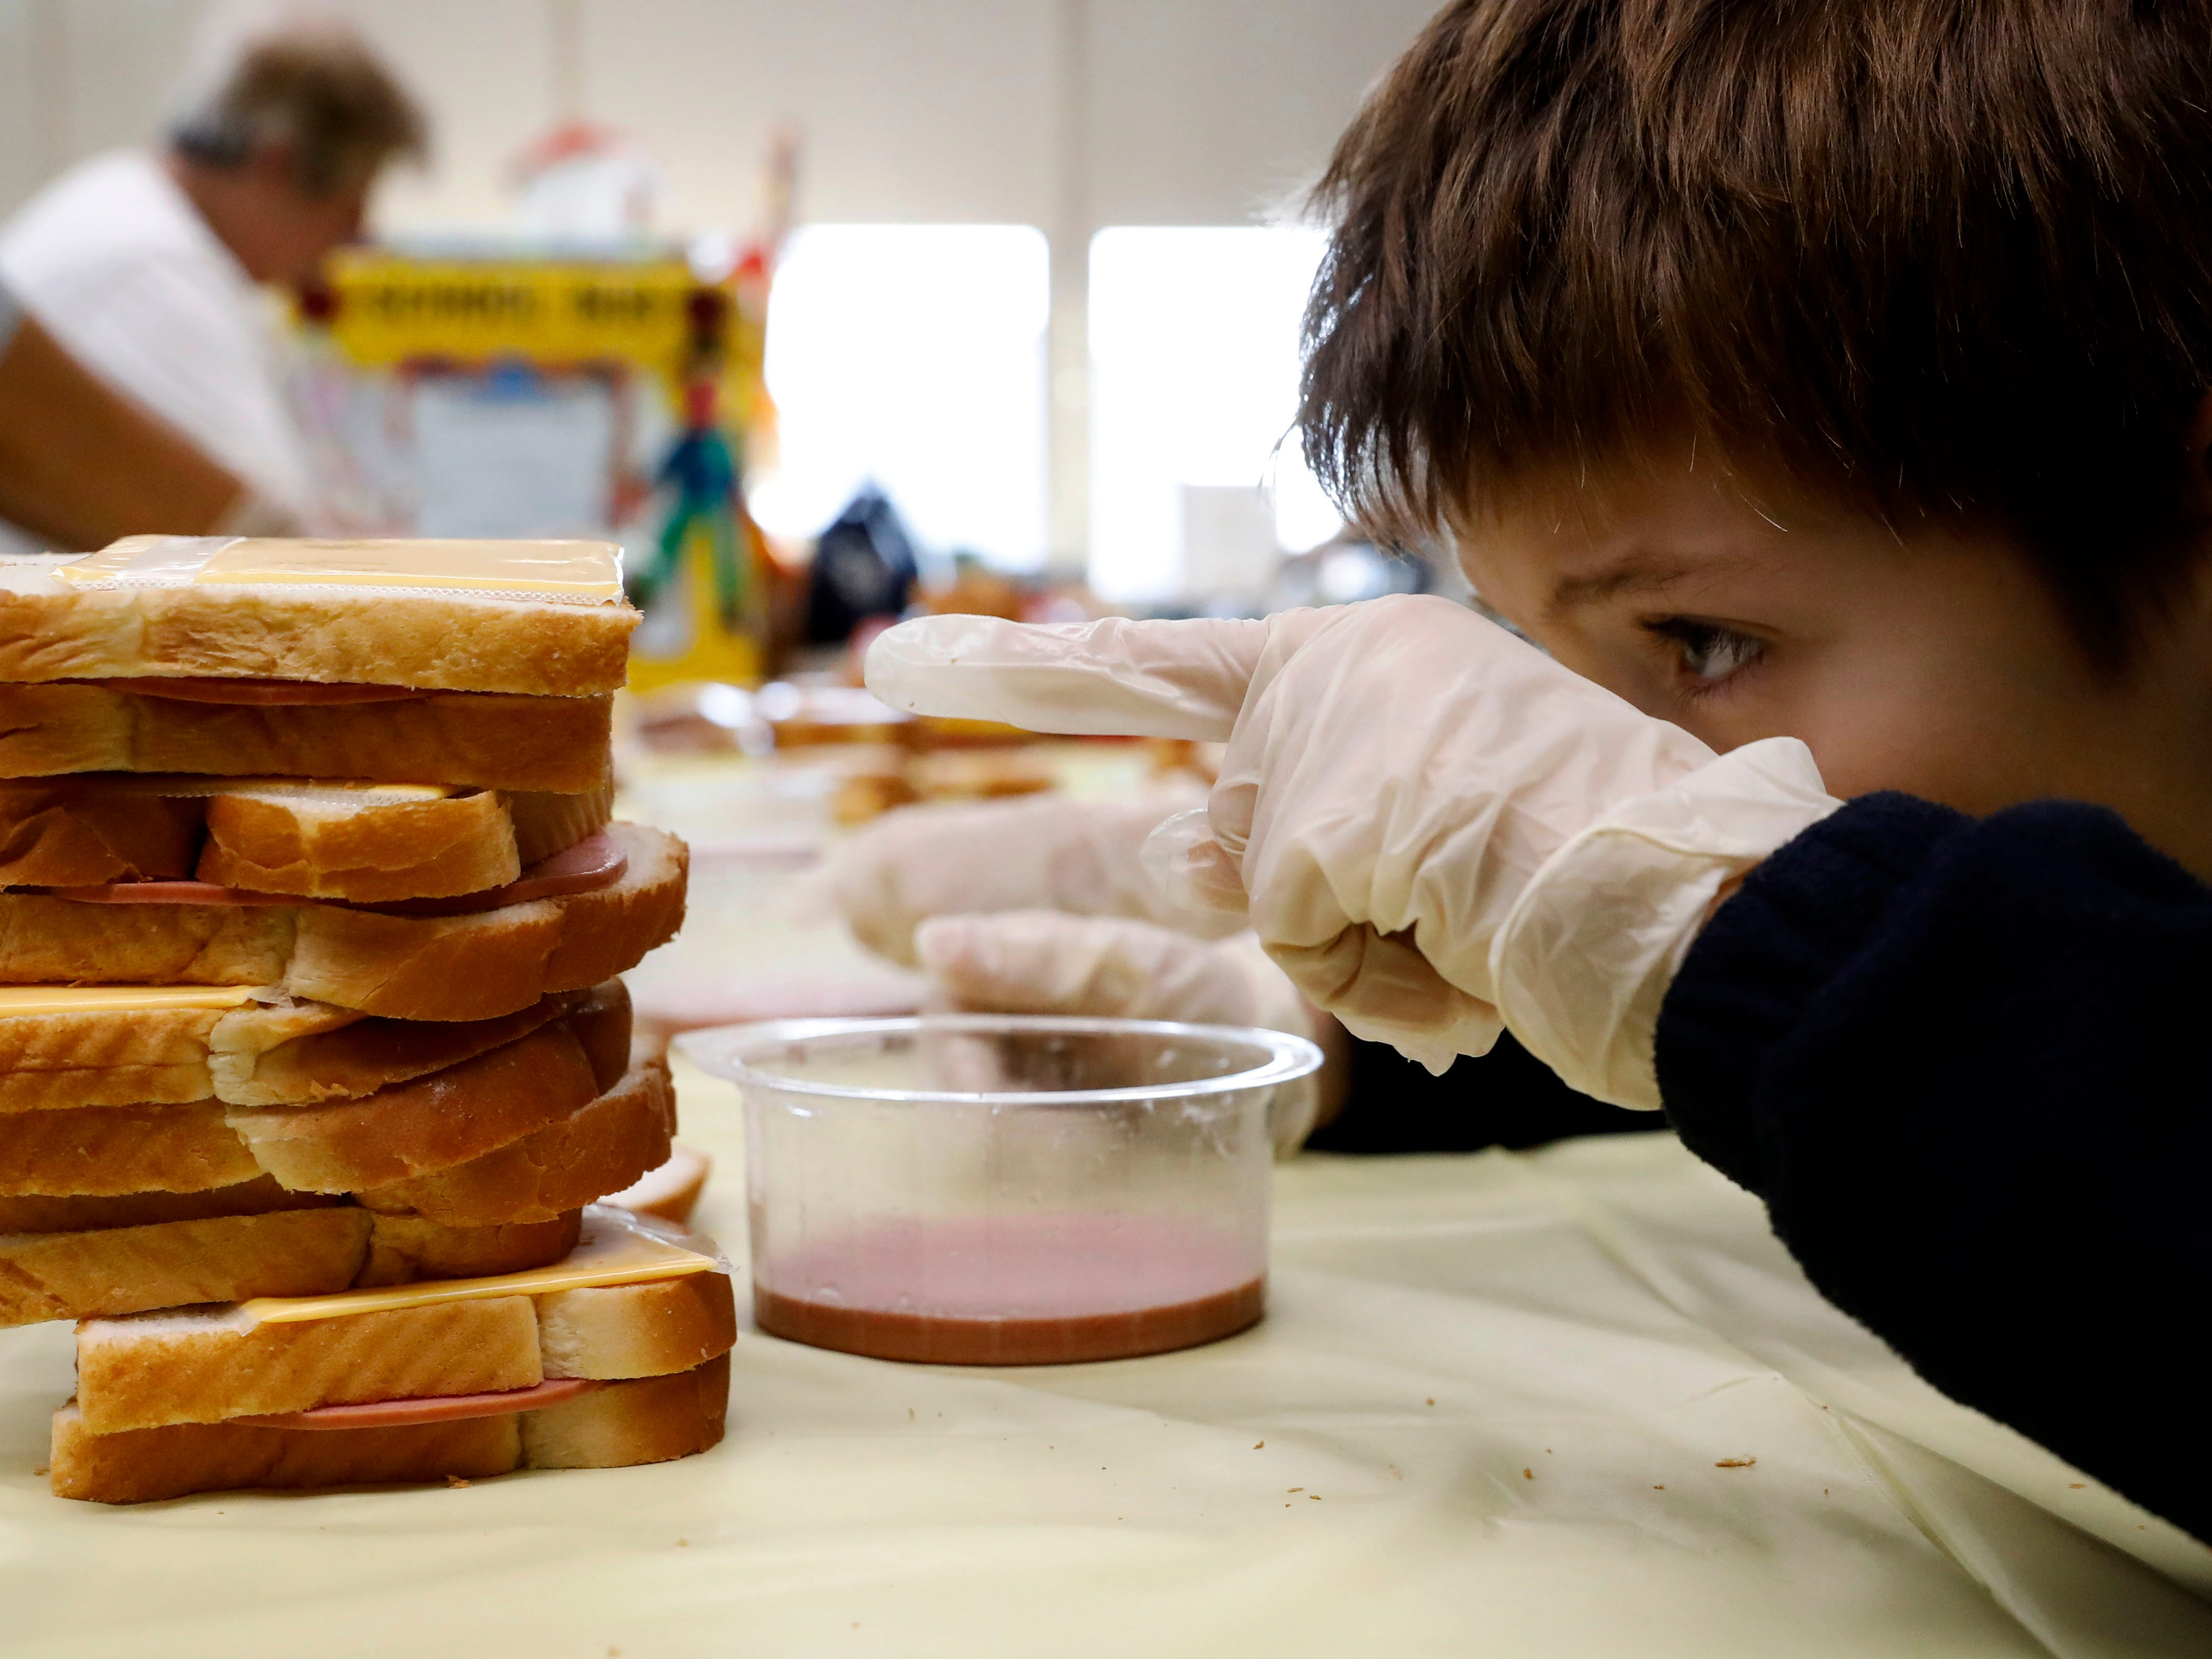 Sam Tencza counts the number of bologna and cheese sandwiches in his stack Thursday, Nov. 8, 2018, at St. Bernadette Catholic School in Lancaster. Every month students at the school make sandwiches for Foundation Dinners in Lancaster. The eight fourth graders at the school made more than 100 sandwiches for the charity to provide to homeless people in Lancaster.